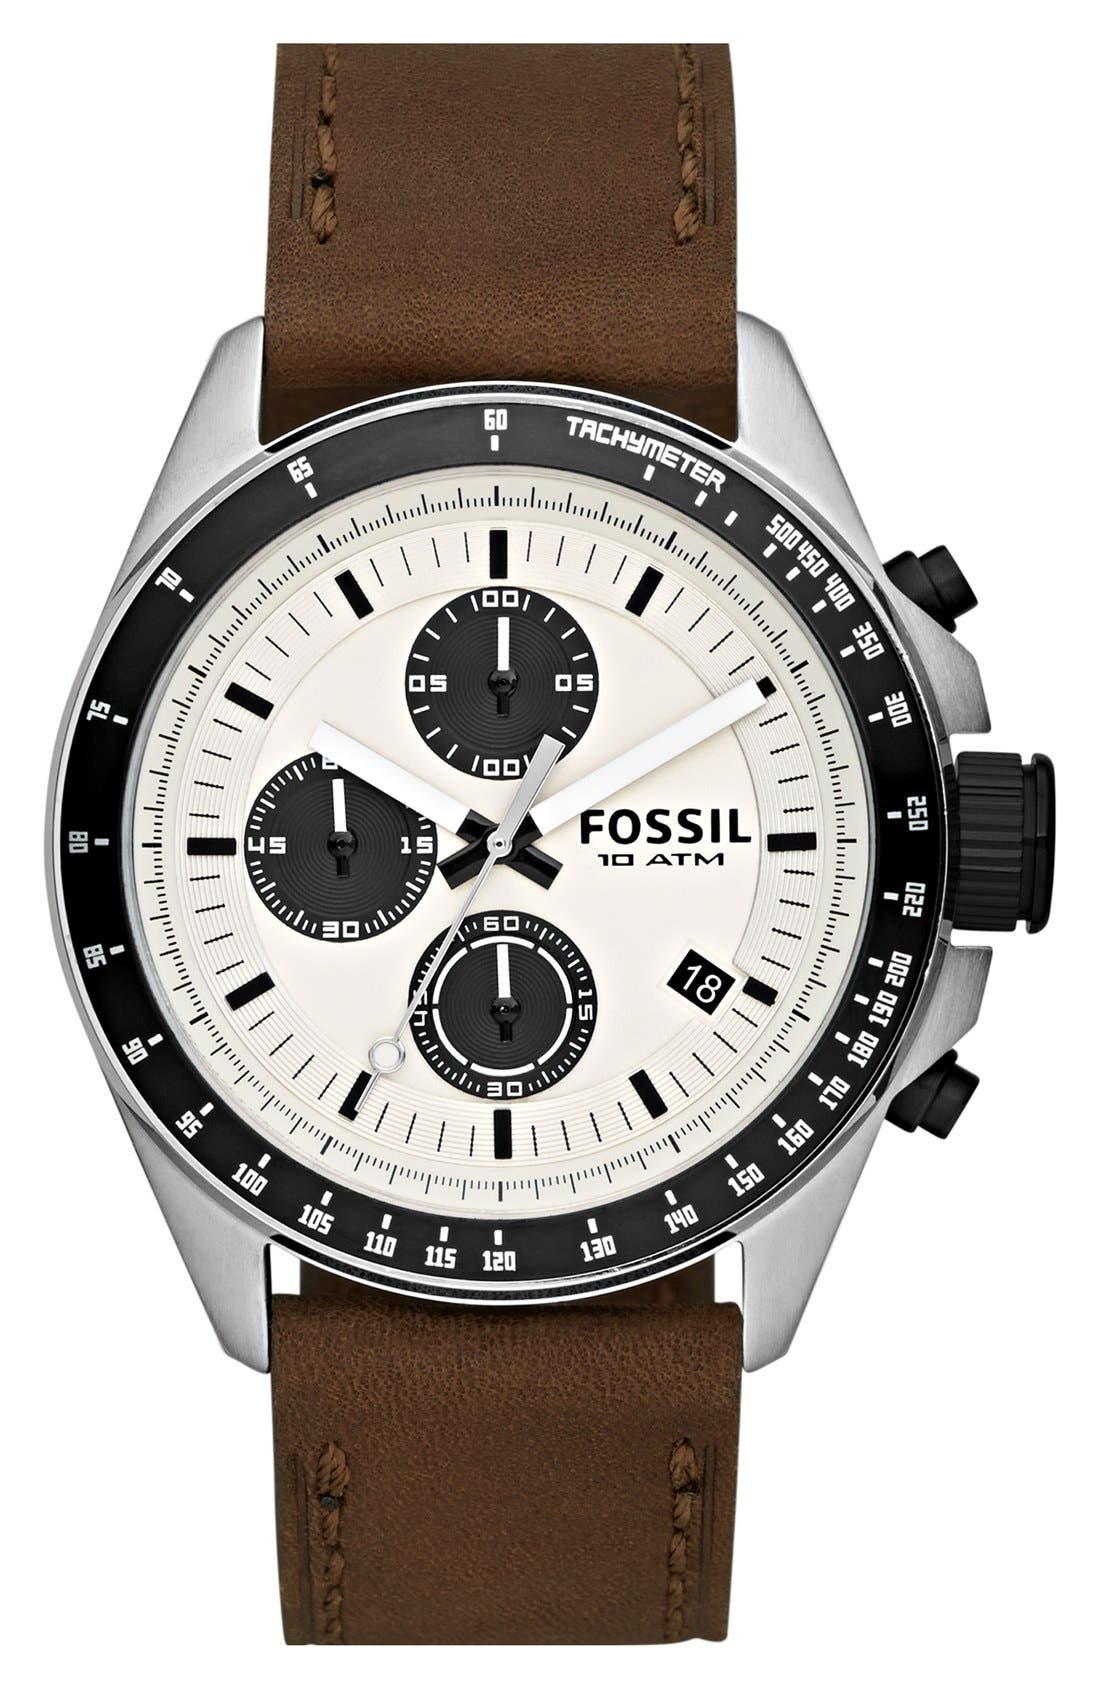 Main Image - Fossil 'Decker' Chronograph Leather Strap Watch, 45mm